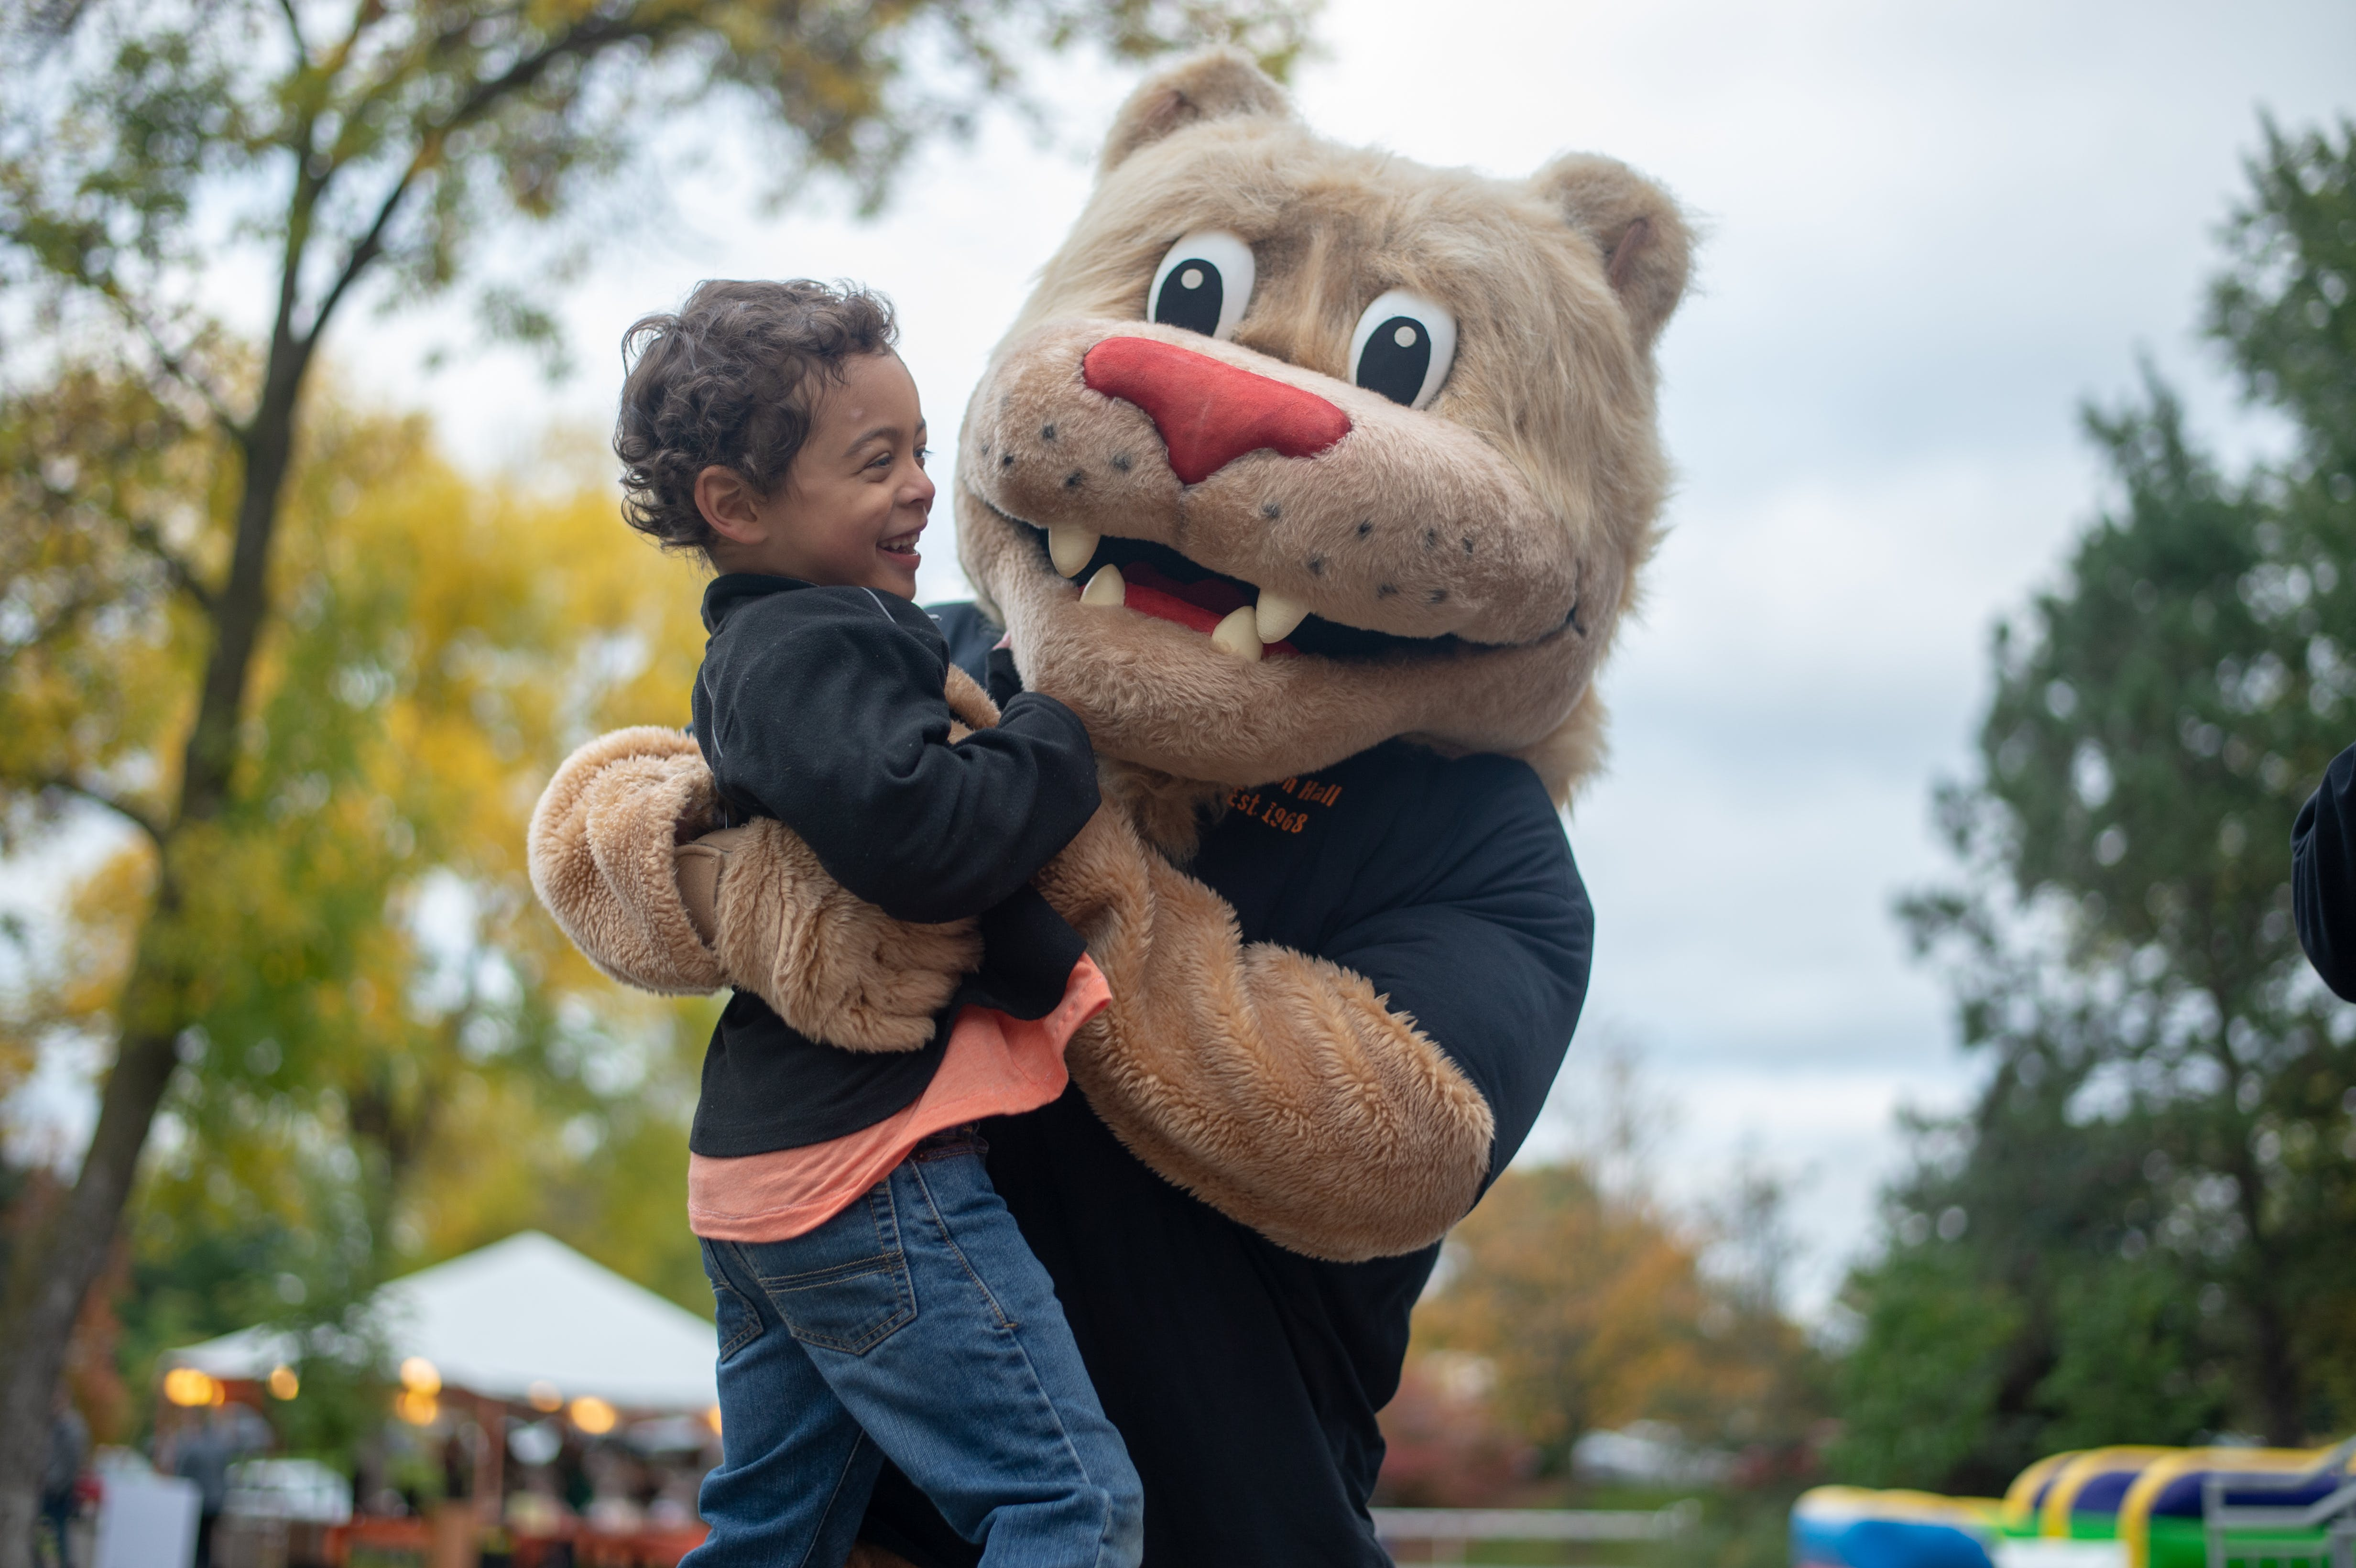 Camden Davis at Homecoming 2018 with Roy the Lion, Bethel's mascot